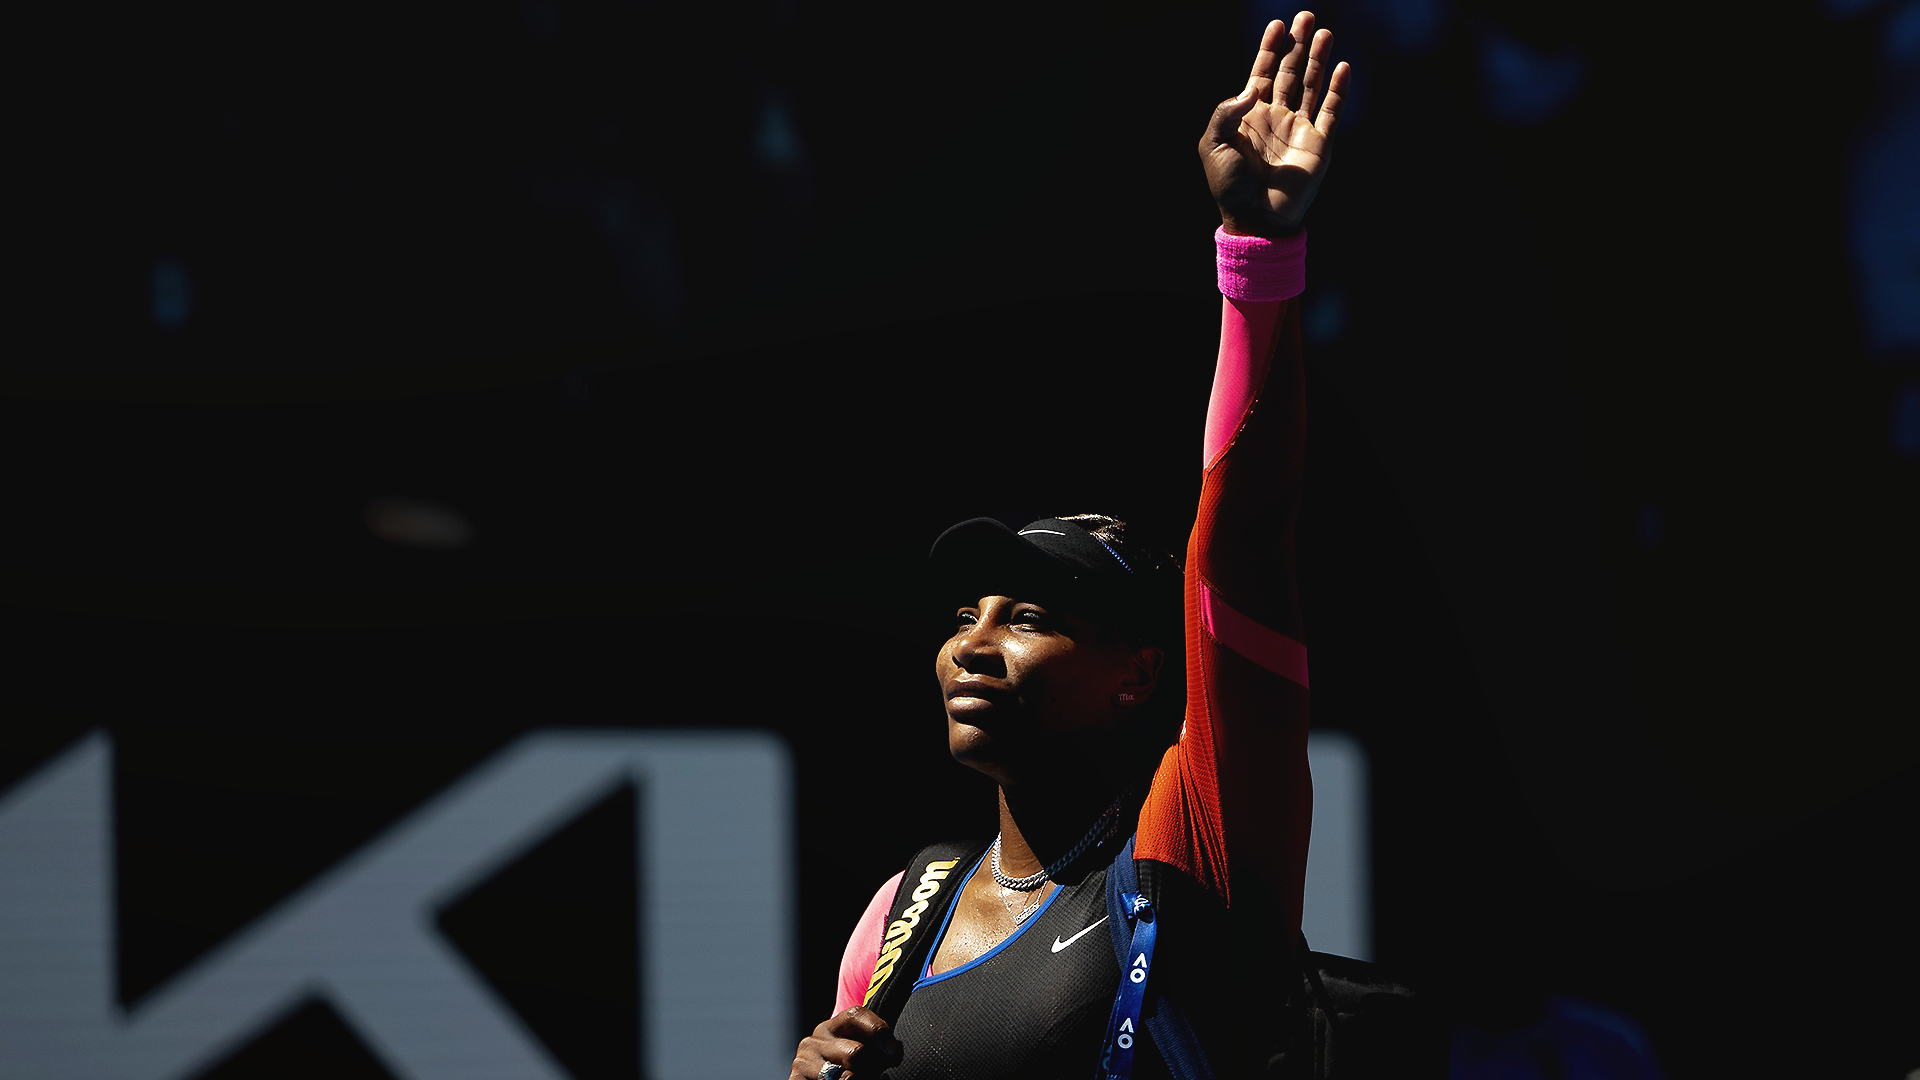 Serena Williams leaves Australian Open press conference in tears after Naomi Osaka loss